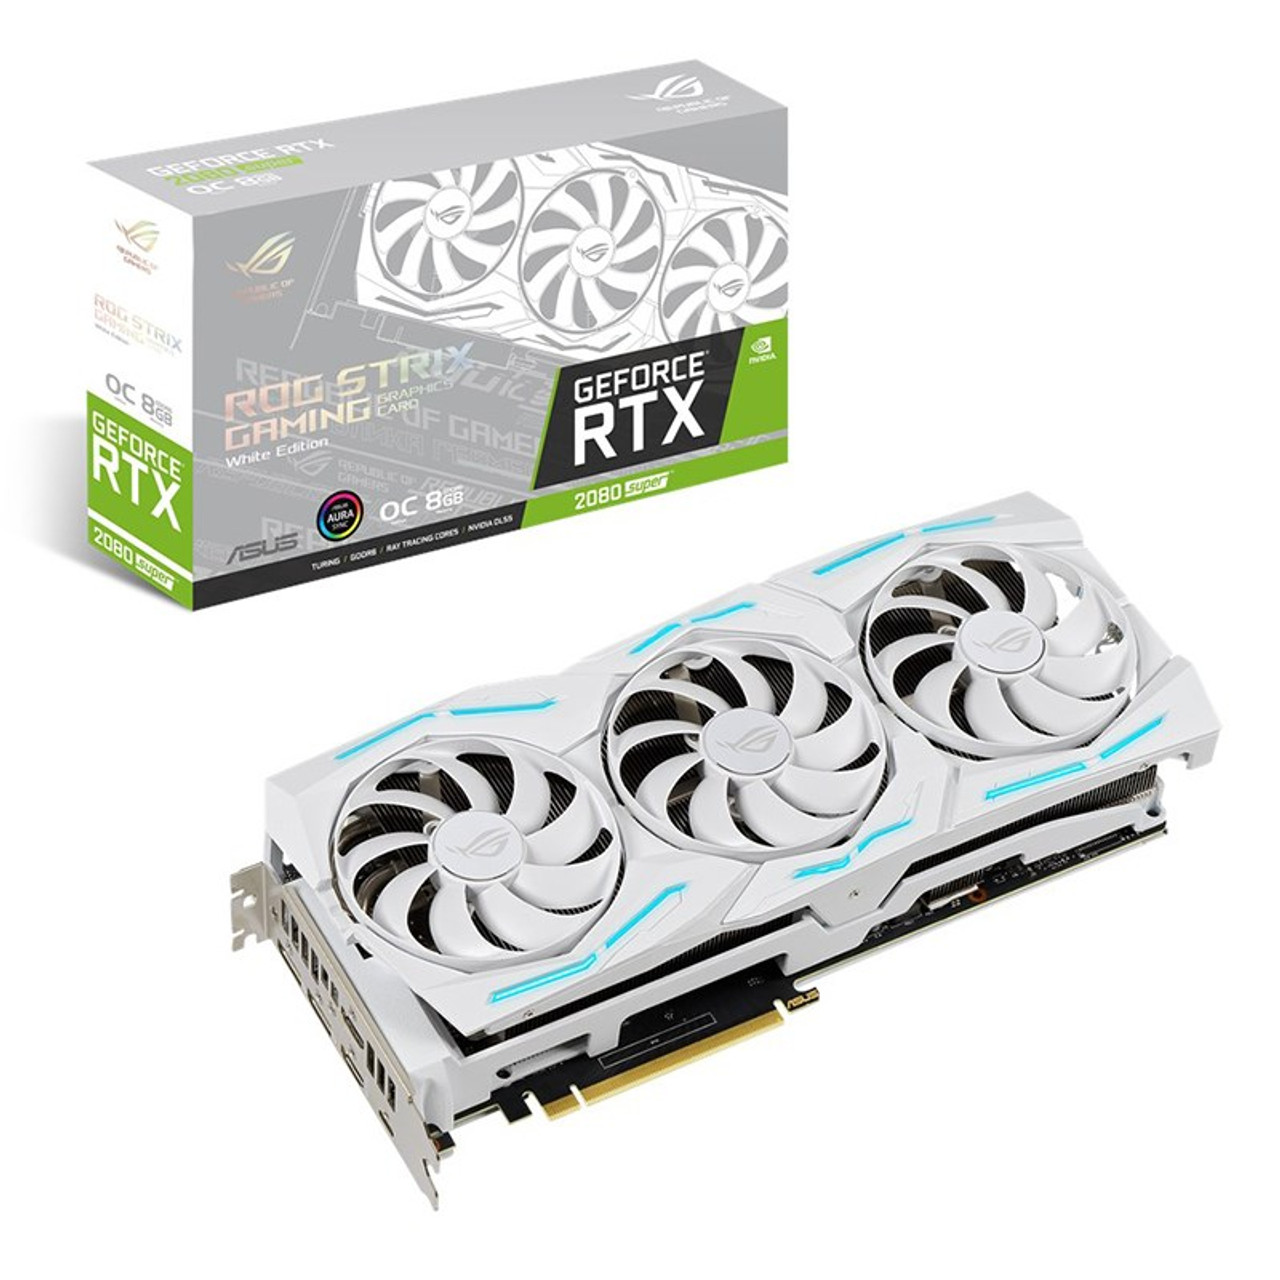 Image for Asus GeForce RTX 2080 SUPER ROG Strix OC 8GB Video Card - White Edition CX Computer Superstore